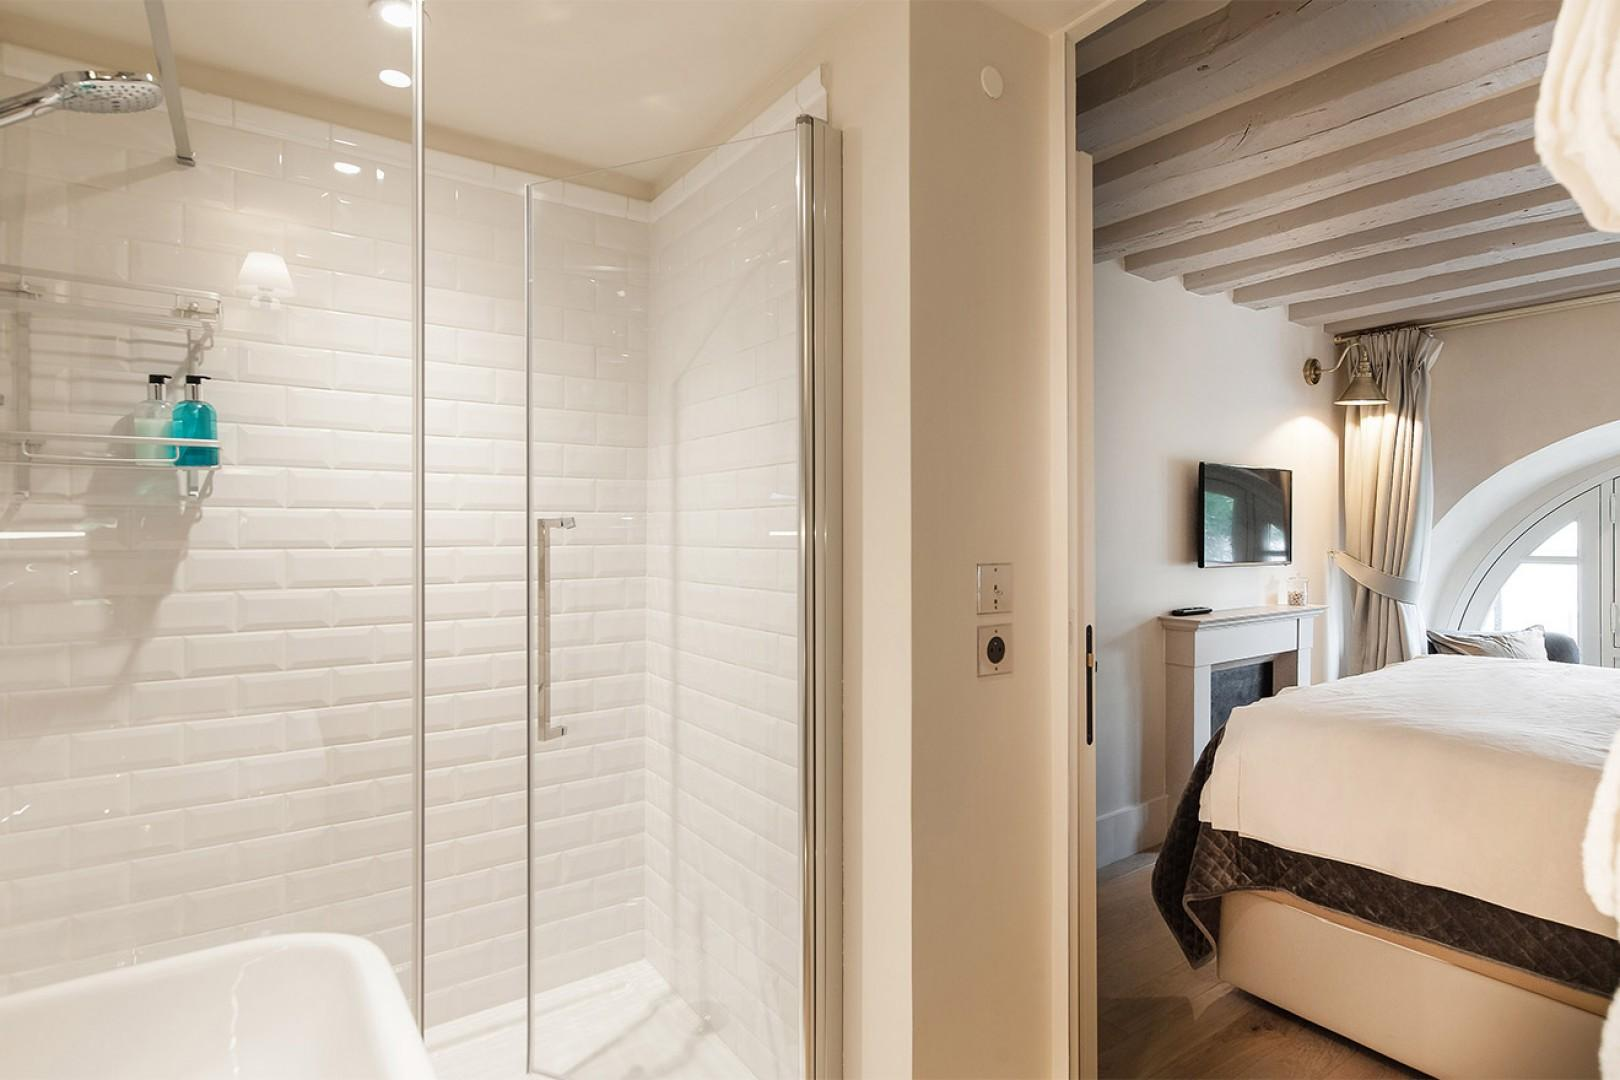 Lather up in this pristine shower.